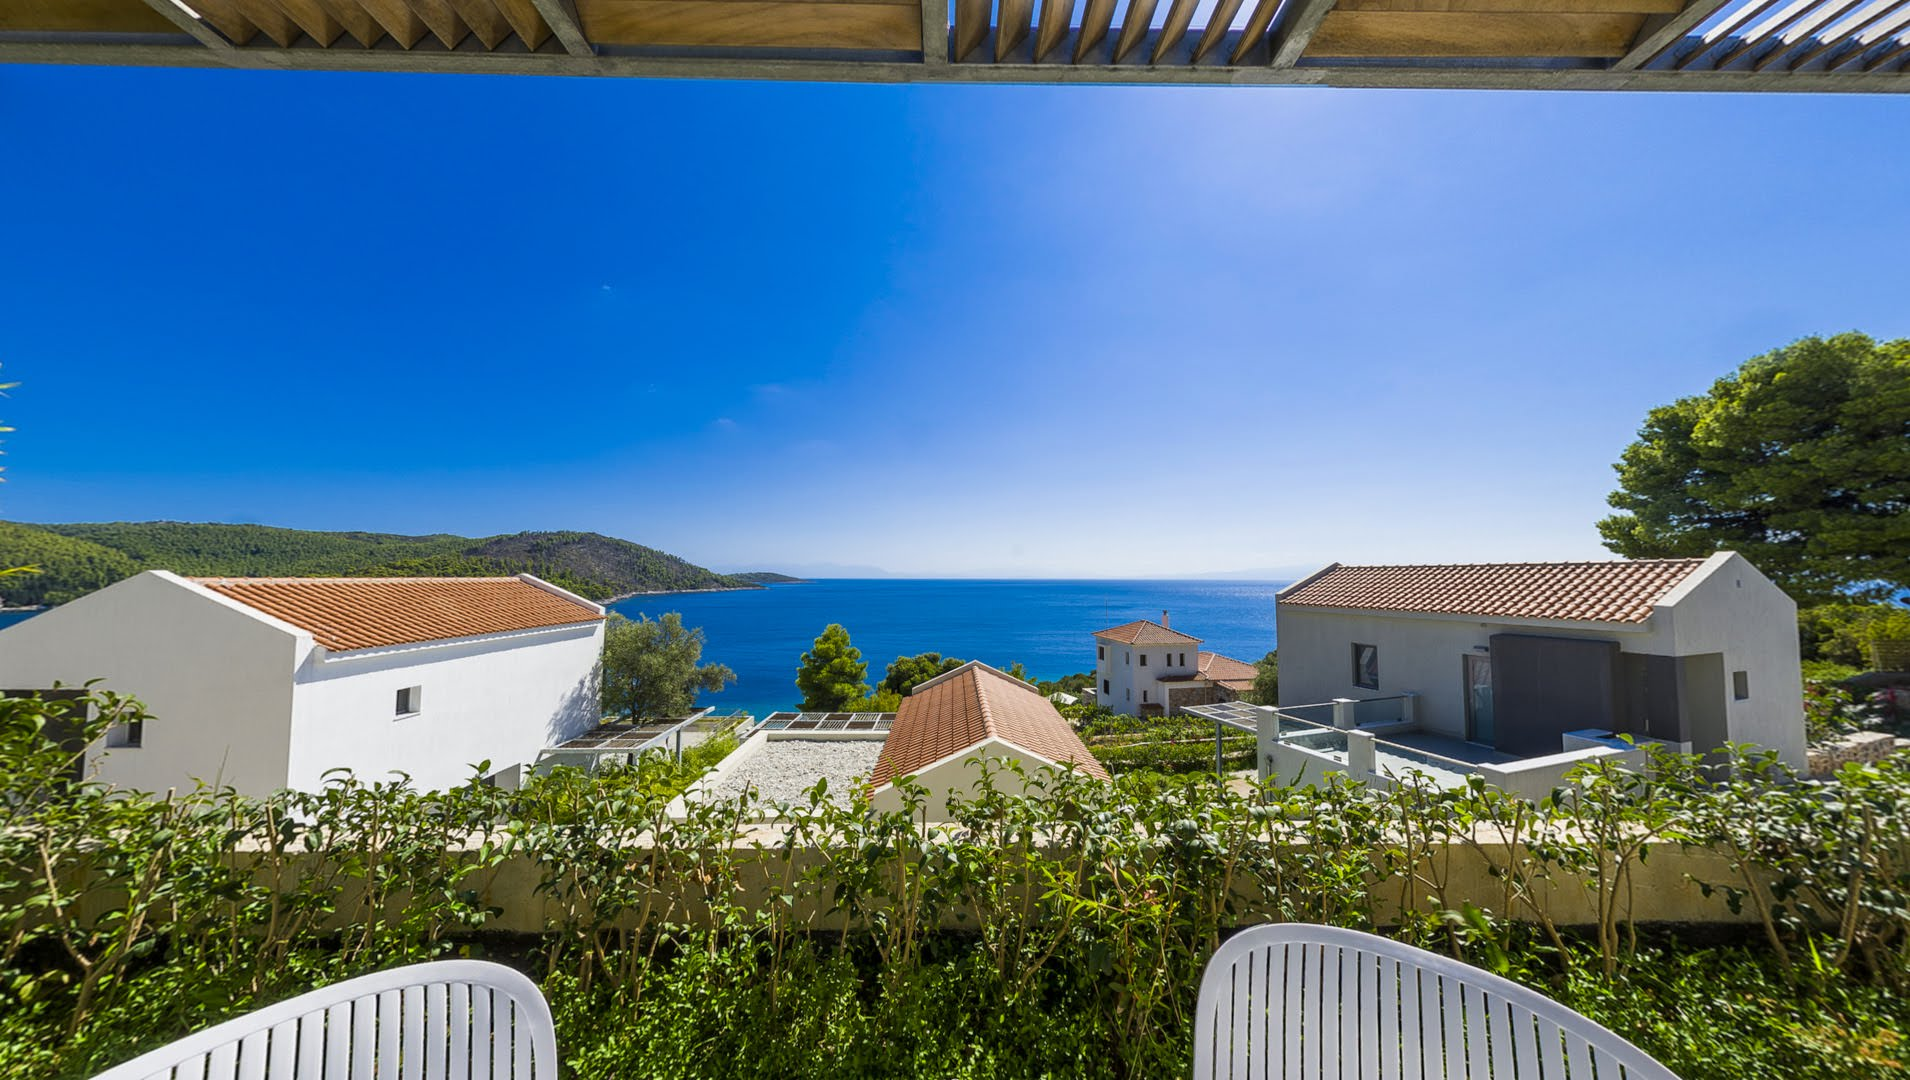 skopelos hotels adrina resort 1 beroom 1 level villa 0.01